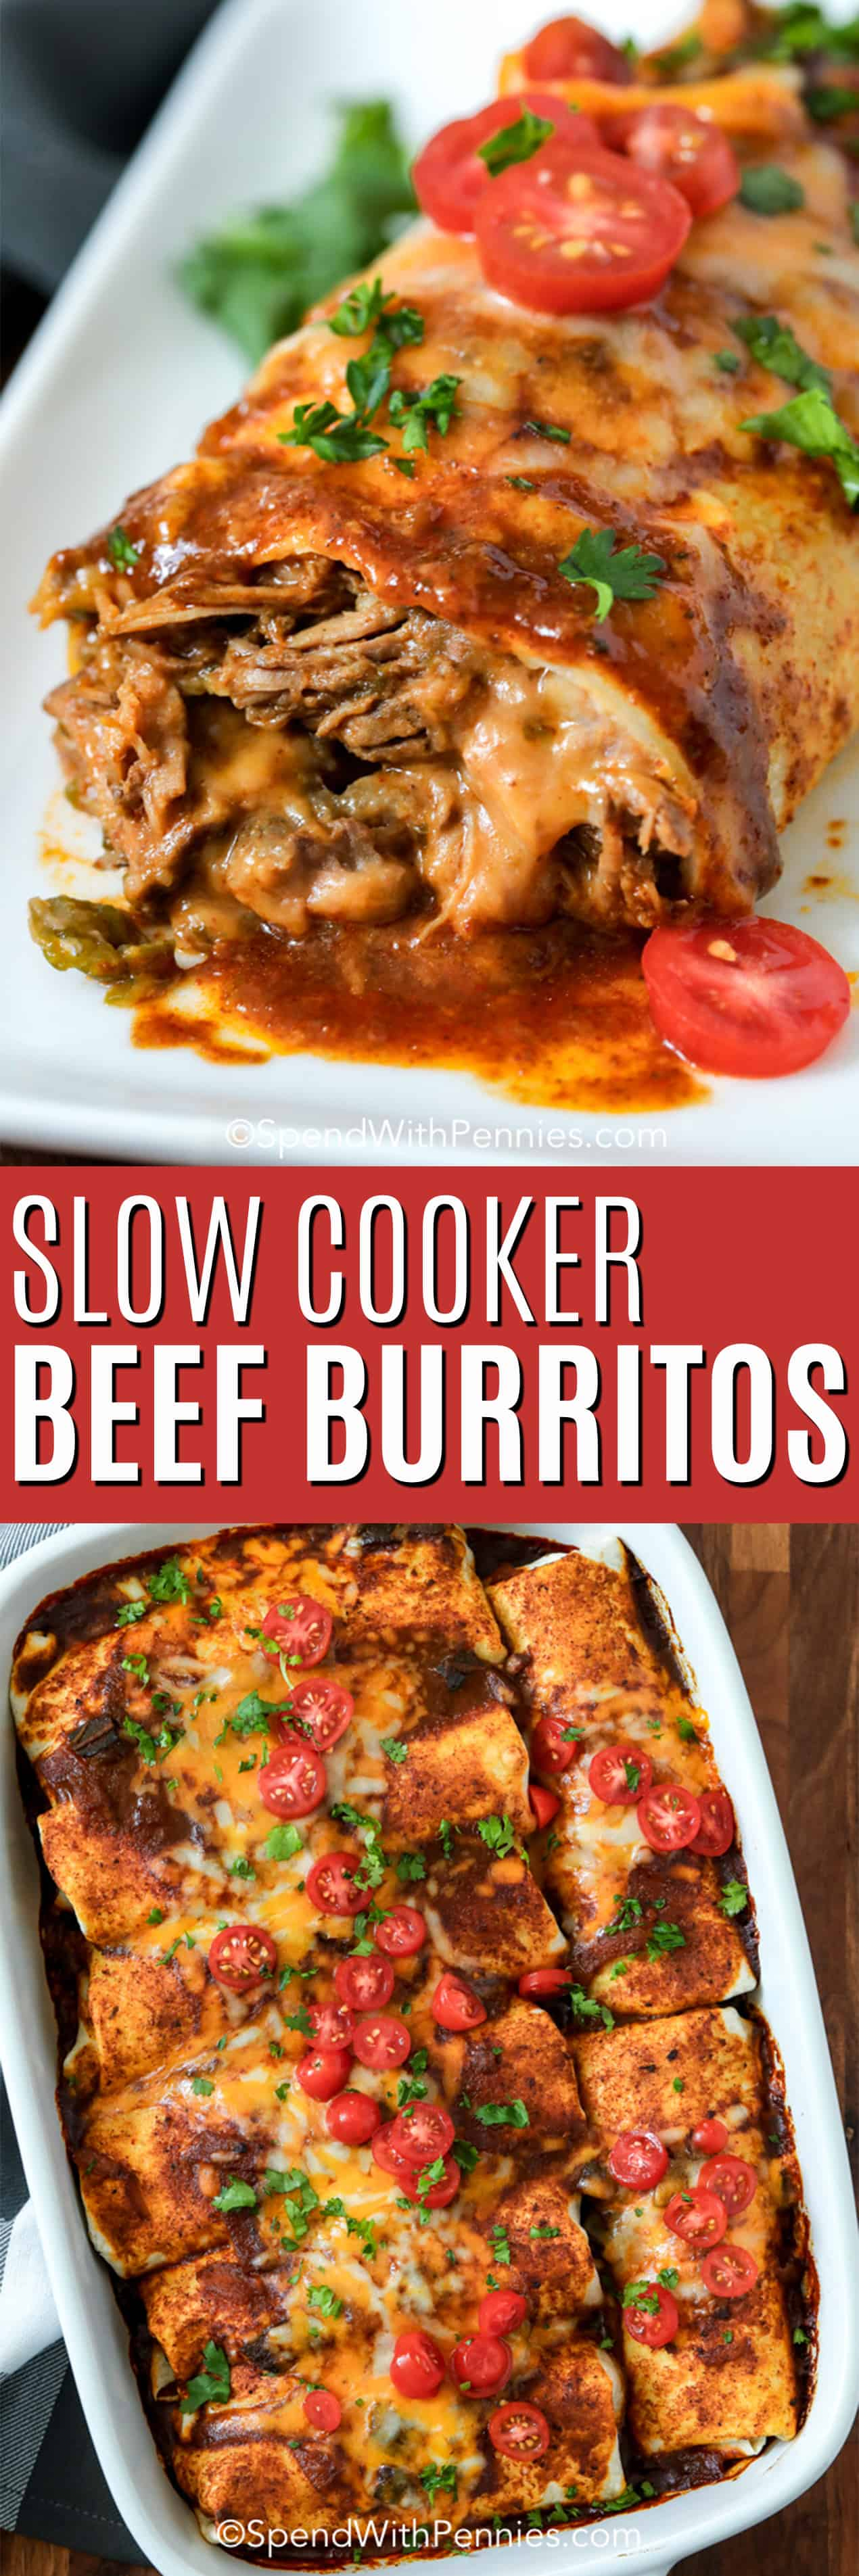 Slow cooker beef burritos in a casserole dish and on a plate with a title